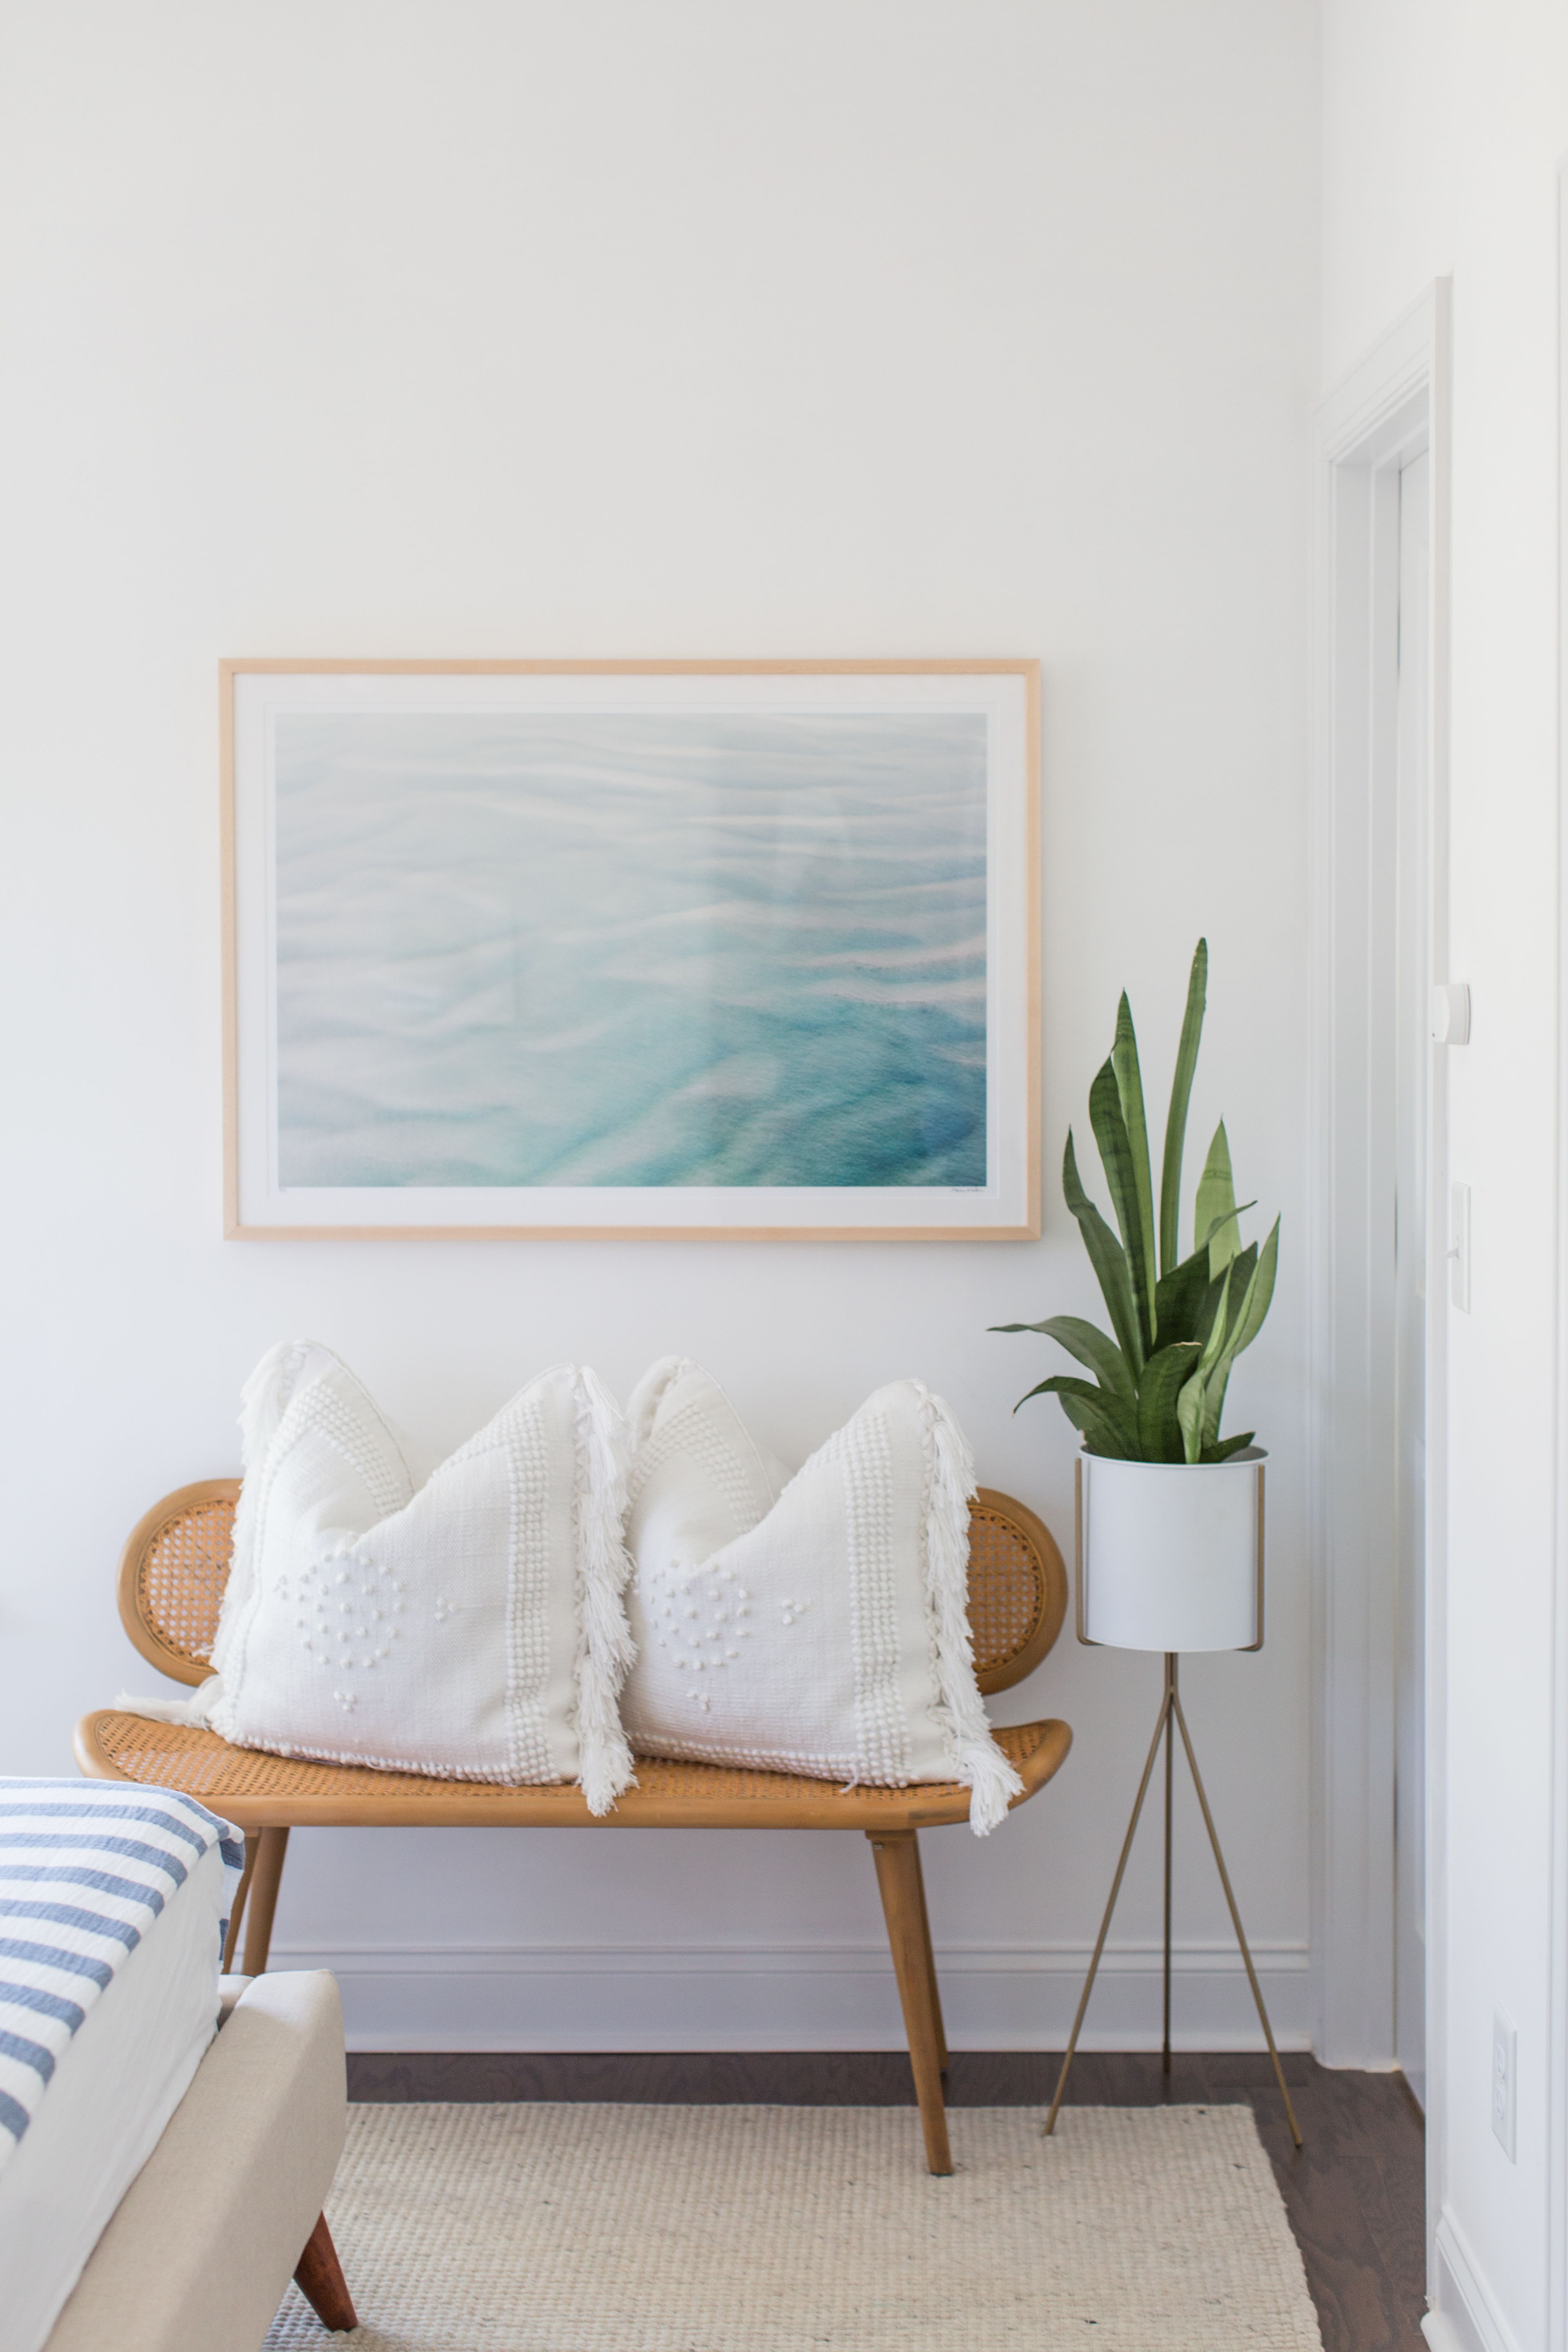 Refresh Your Home with Spring Art - Spring 2020 Home Decor Trends   Gray  Malin